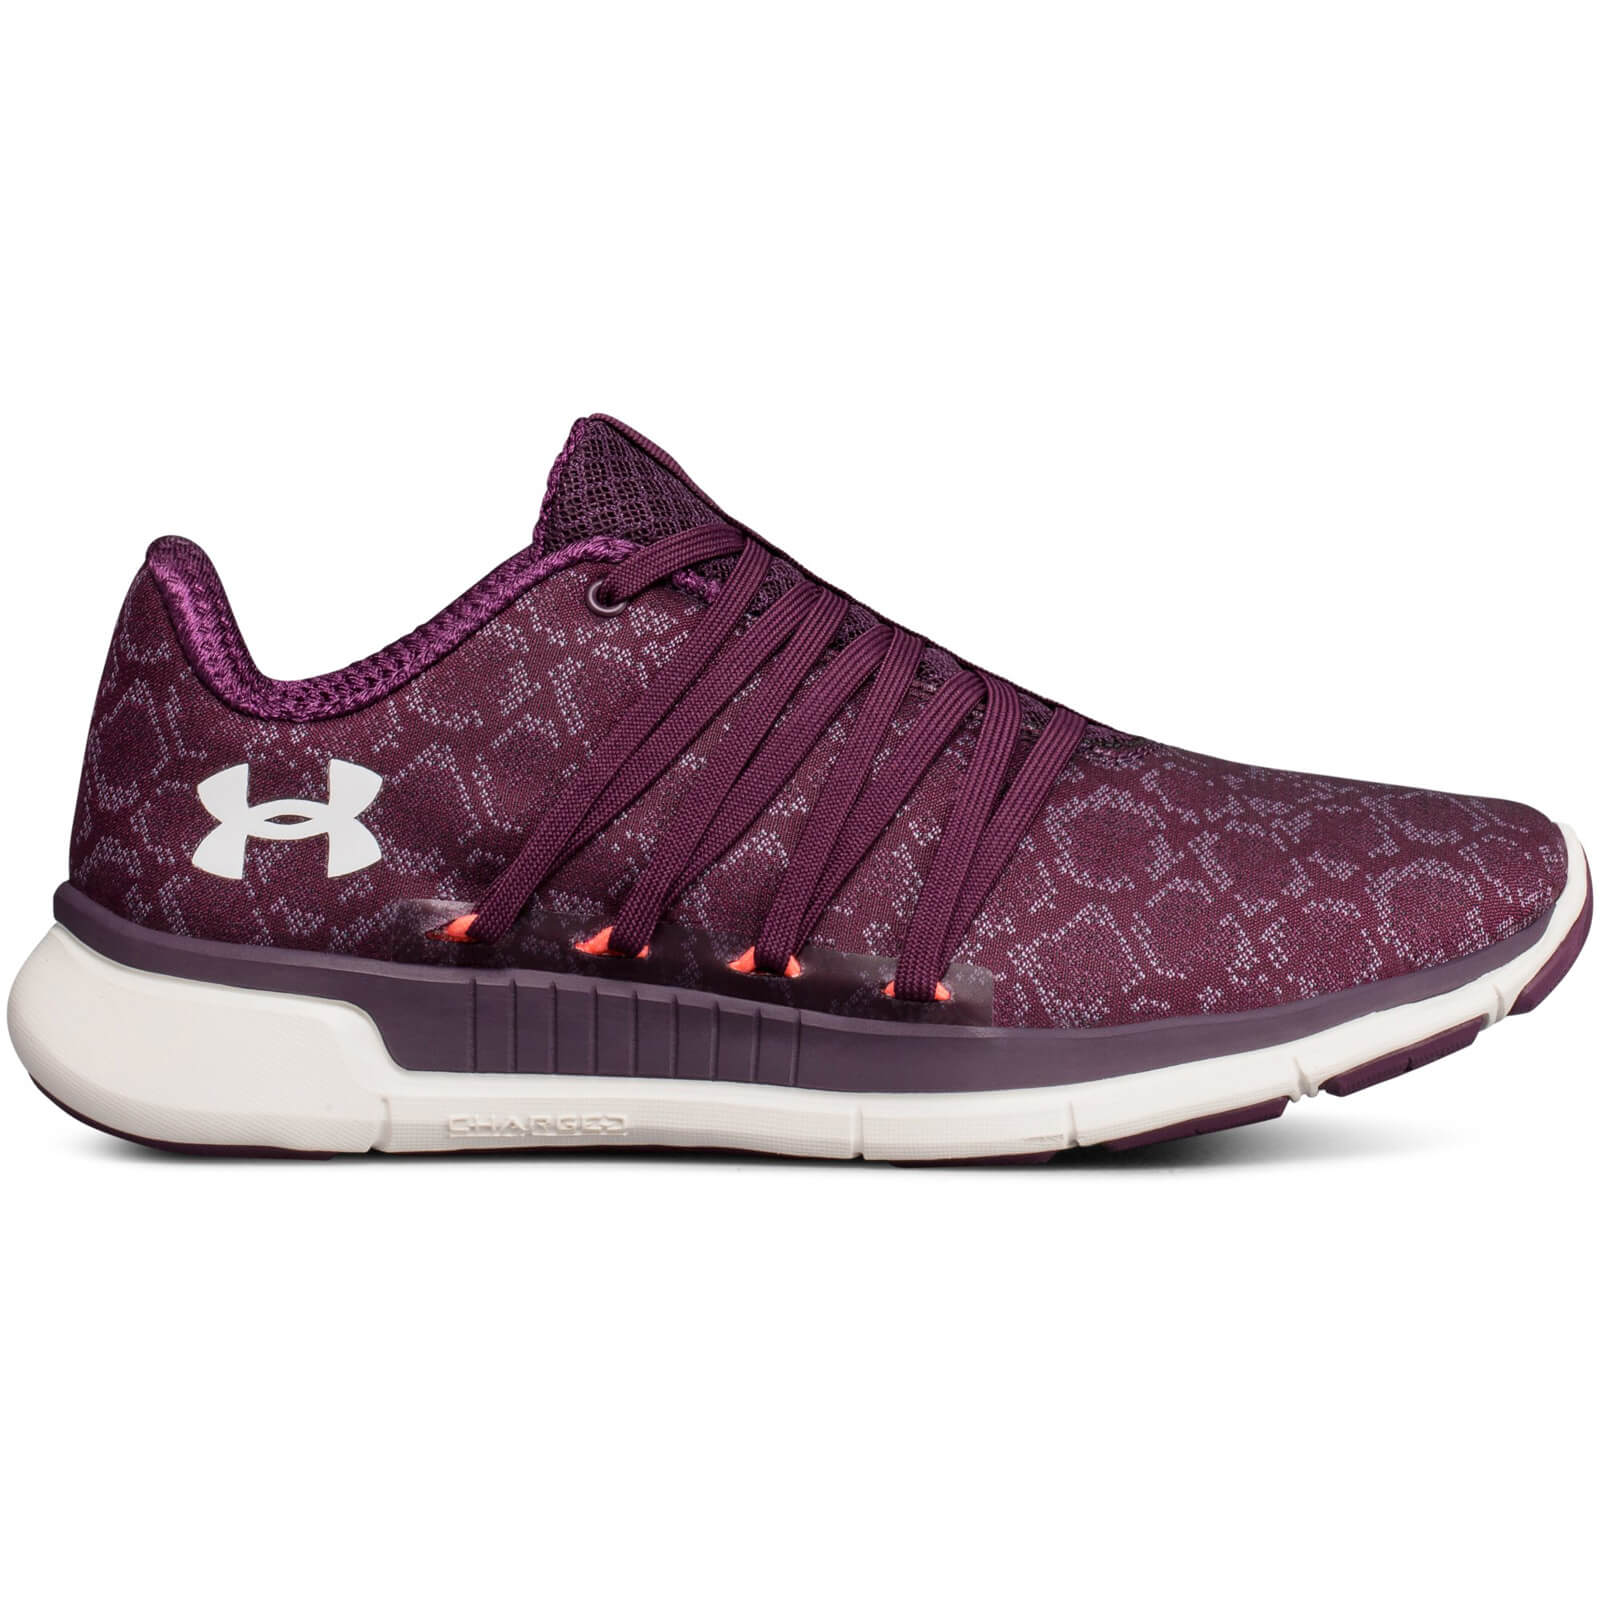 Under Armour Women's Charged Transit